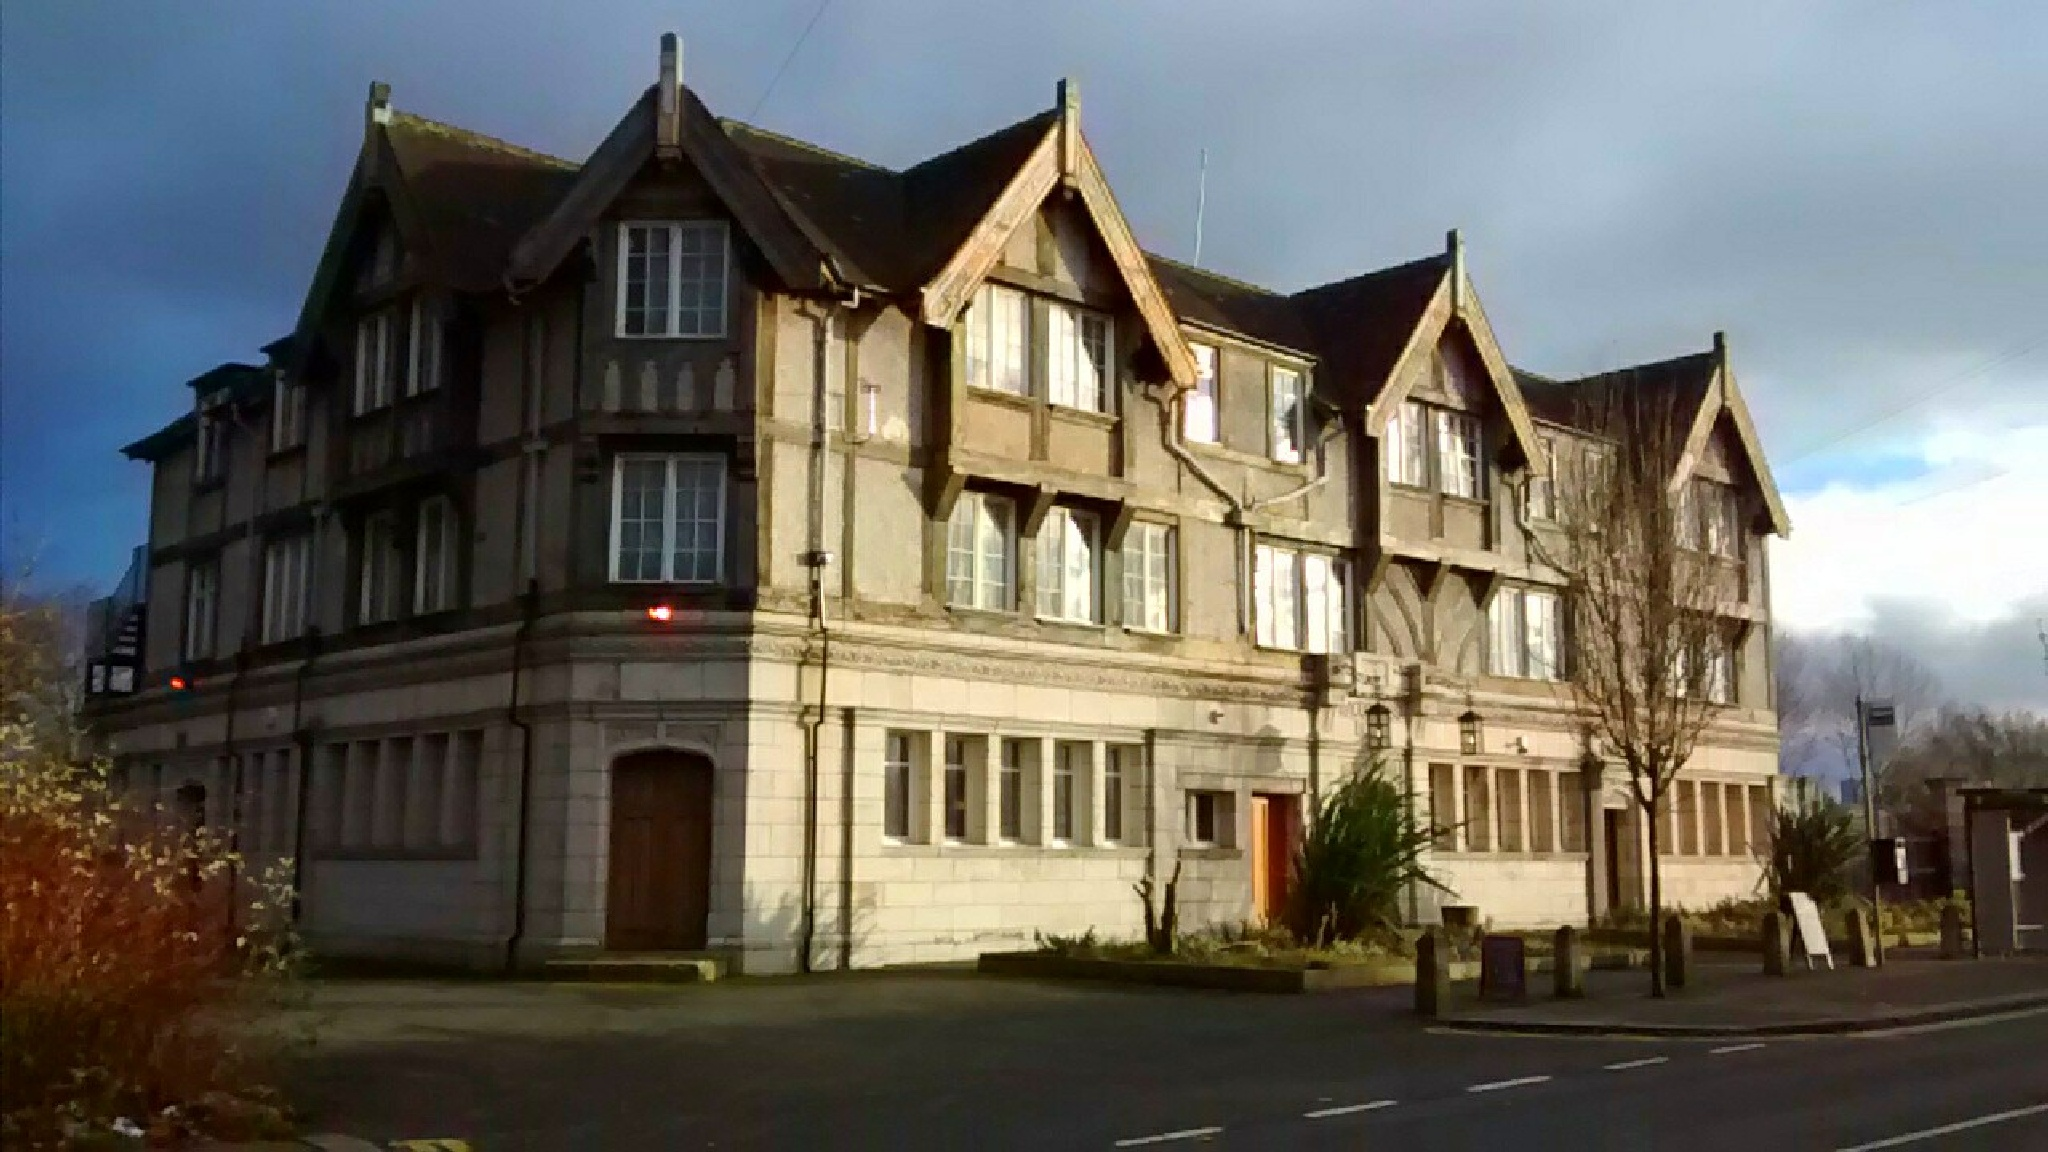 Racecourse Hotel Salford,Greater Manchester by dysonjohn64